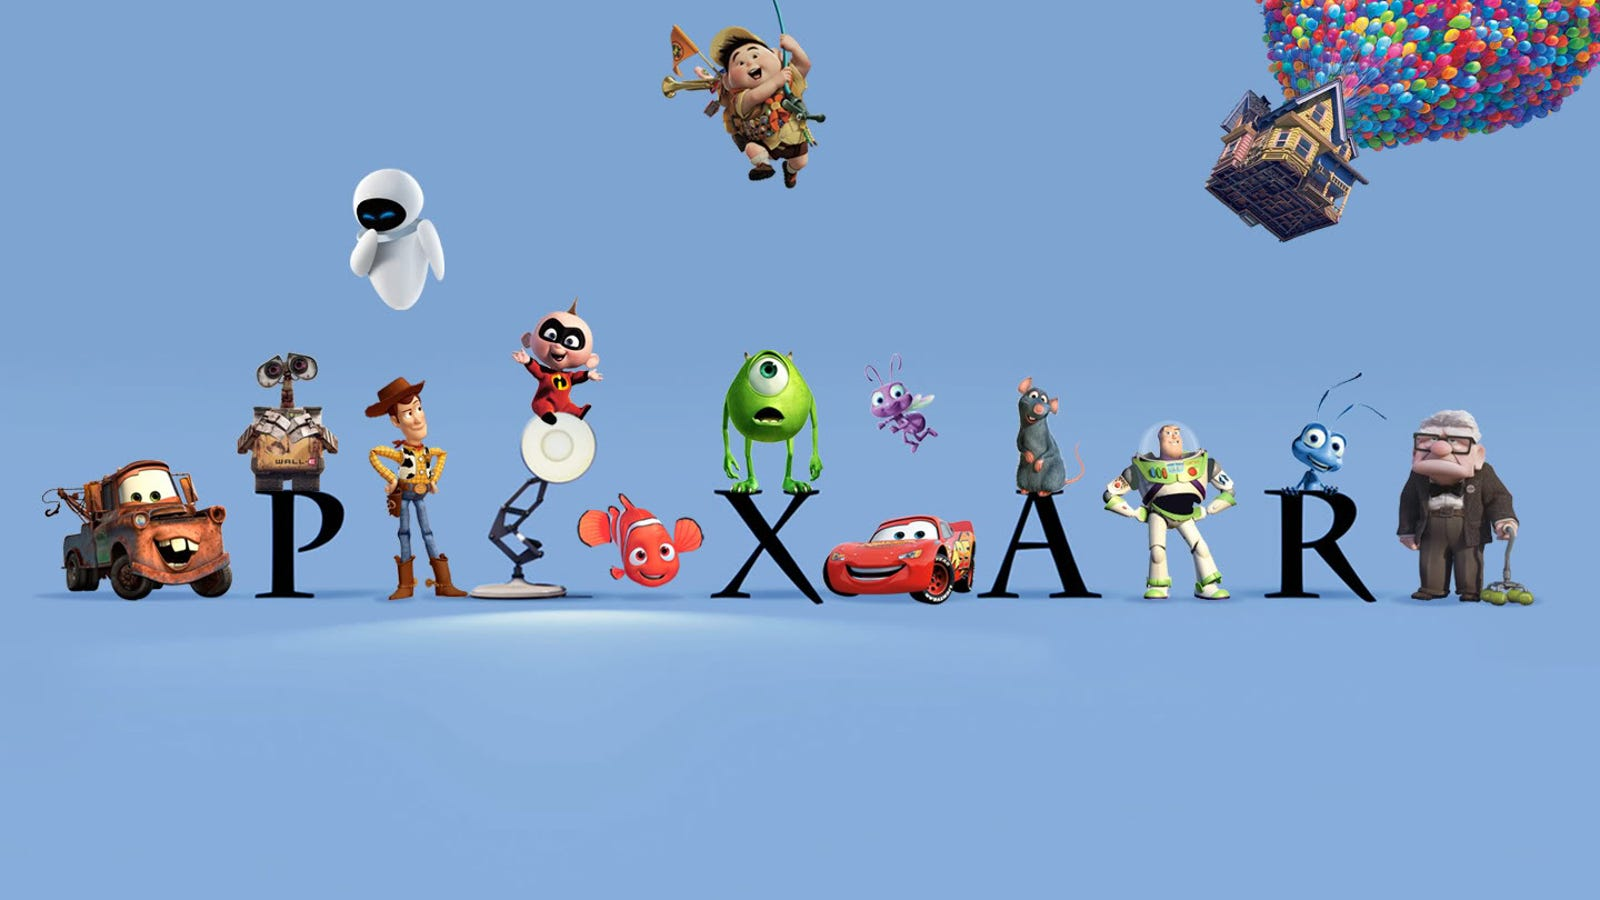 How all Pixar films fit into a single universe